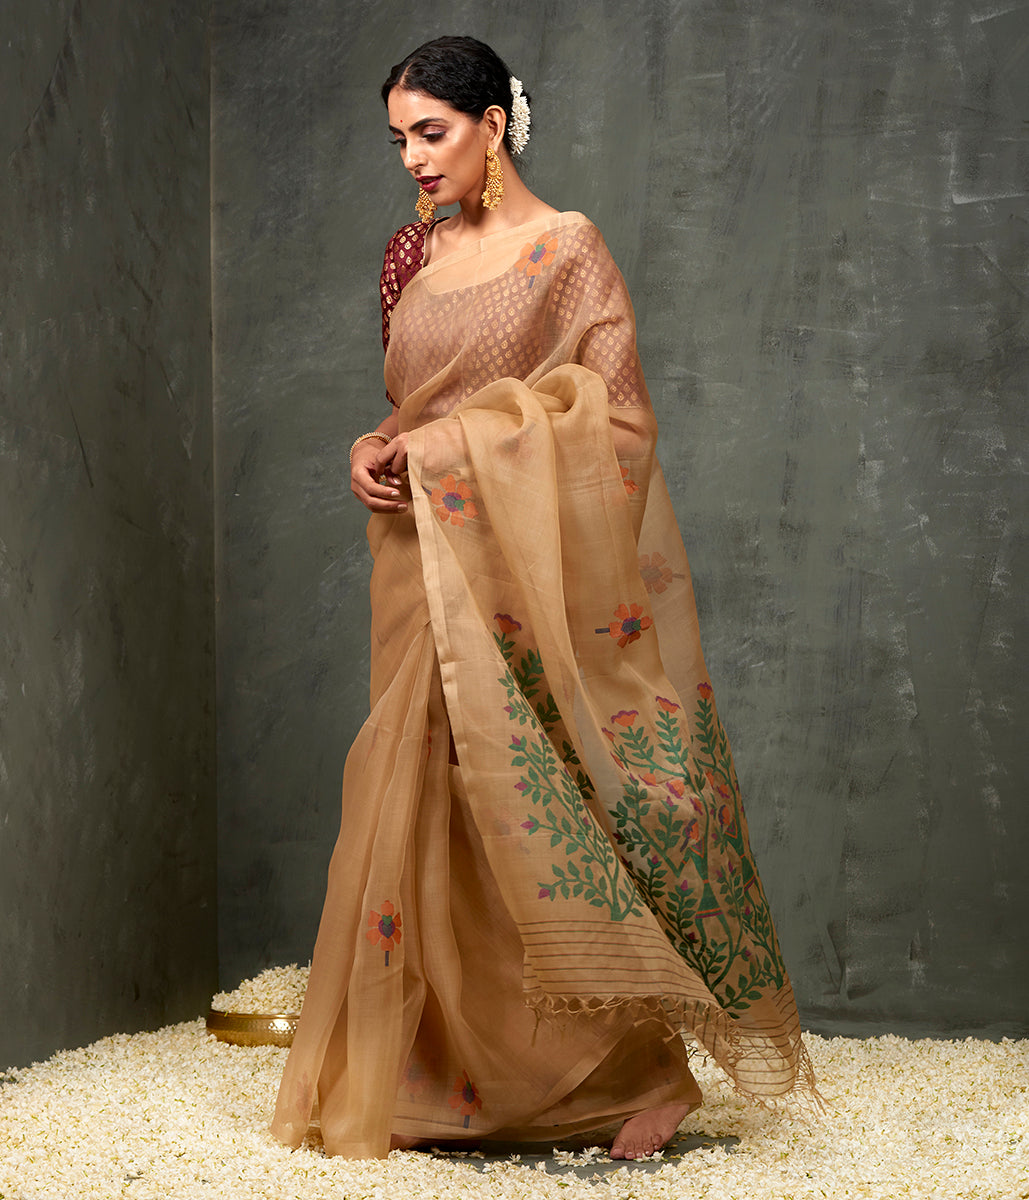 Handwoven Khaki Muslin Dhakai Jamdani Saree with Floral Motif and Heavy Pallu